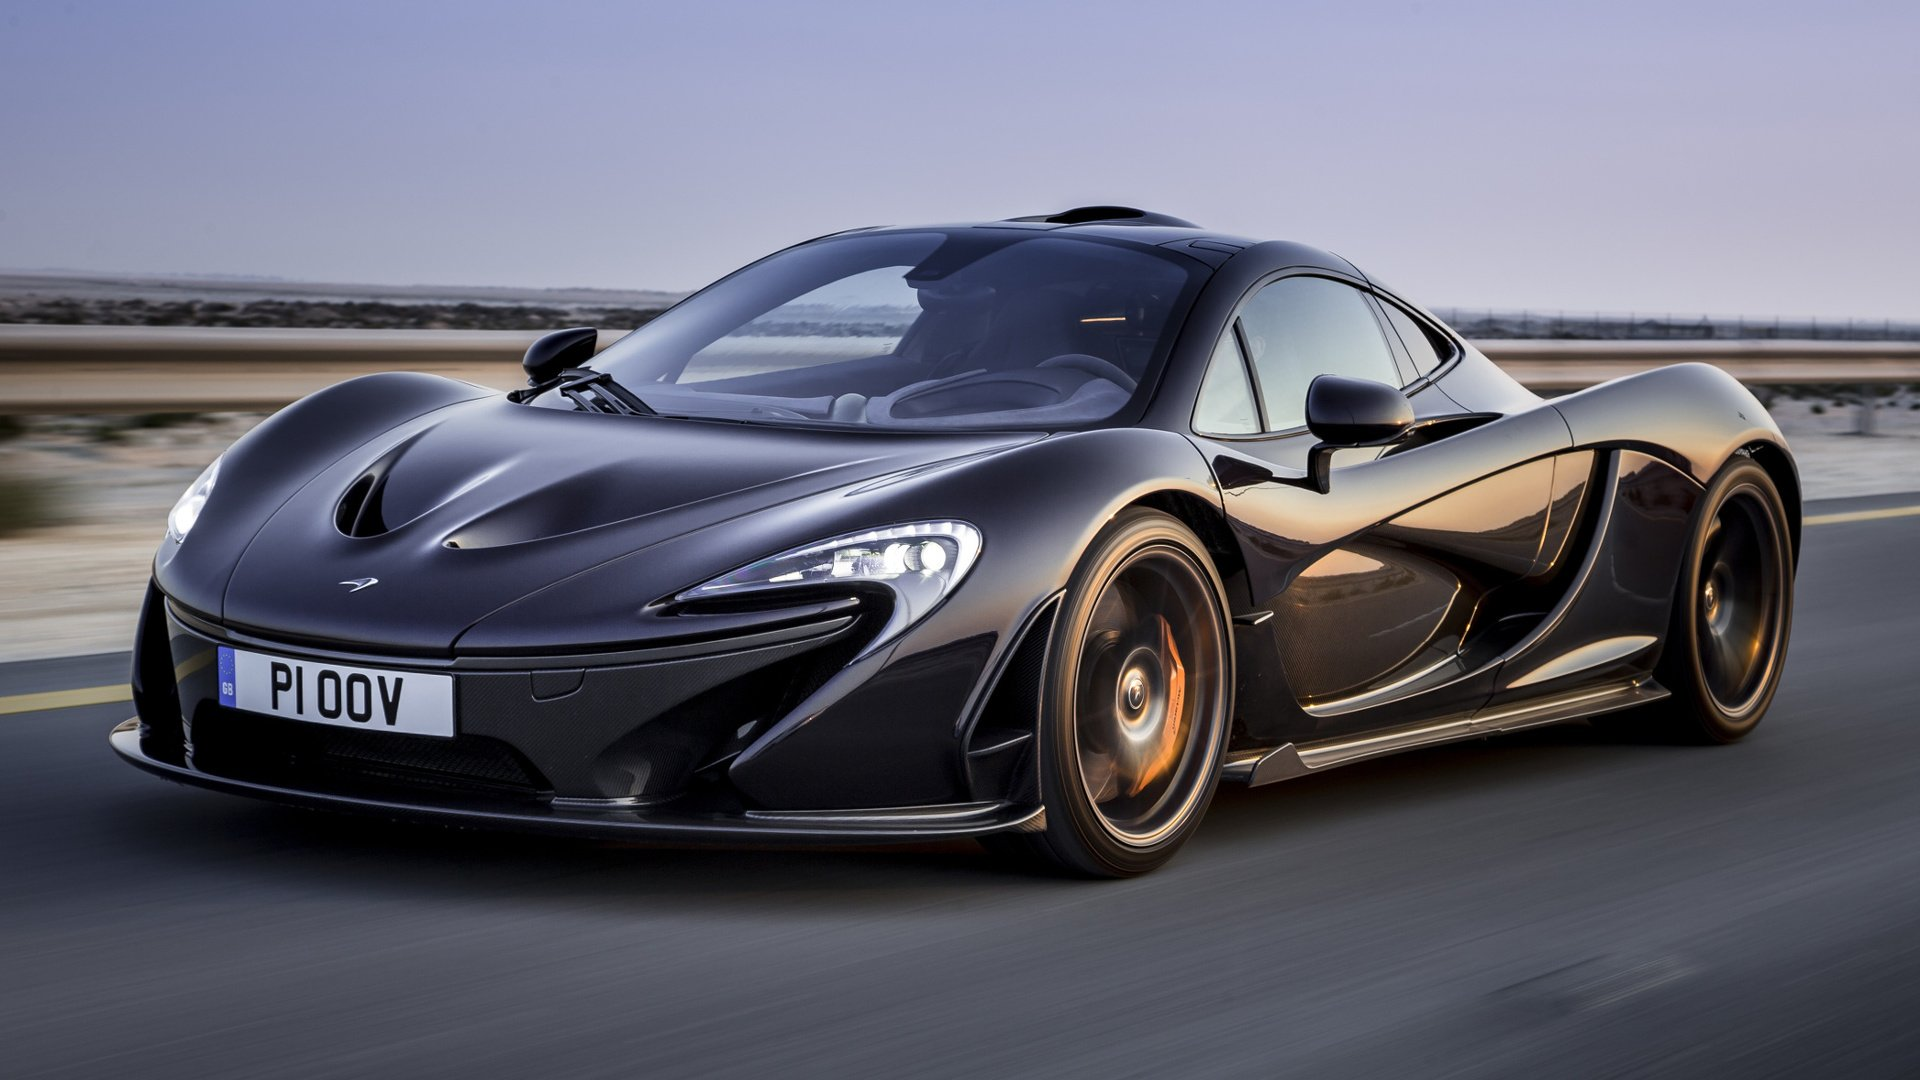 McLaren P1 one of the most Instagram able or Insta-worthy cars among on social media